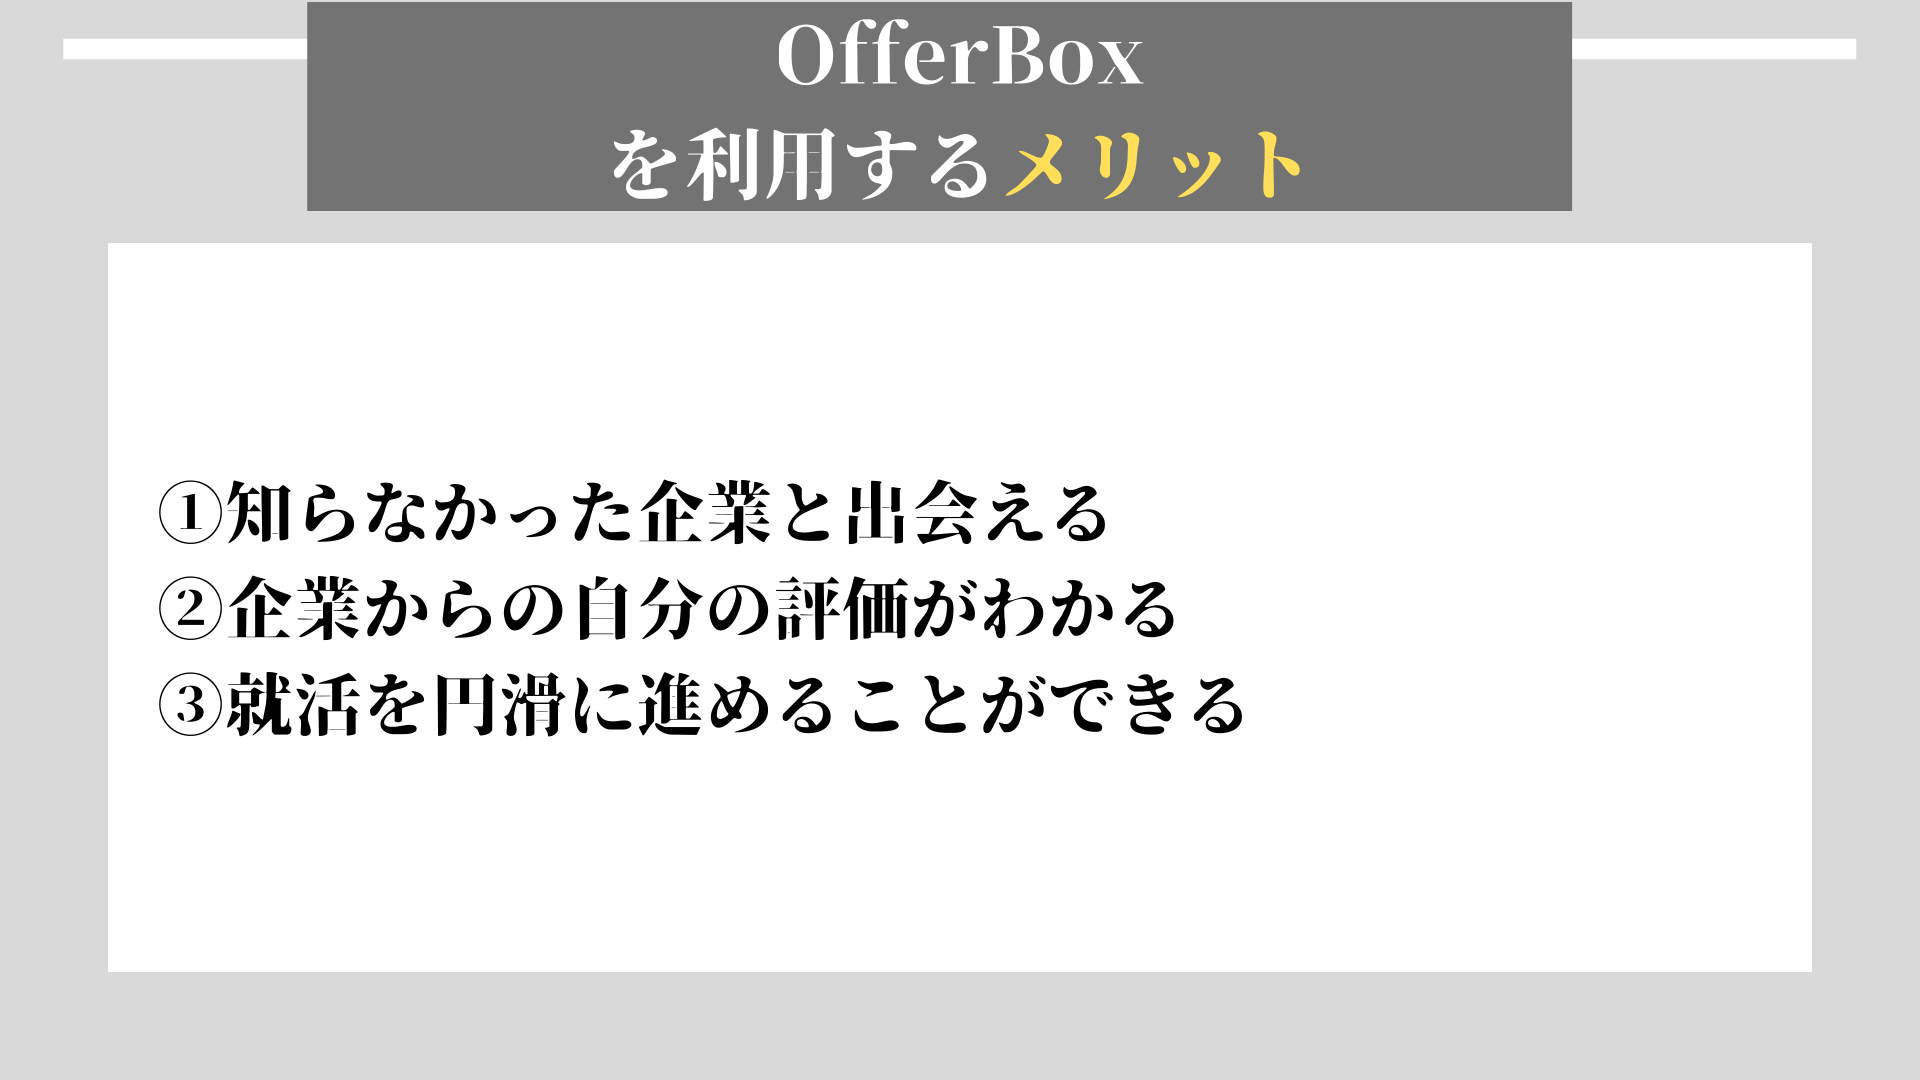 OfferBox メリット